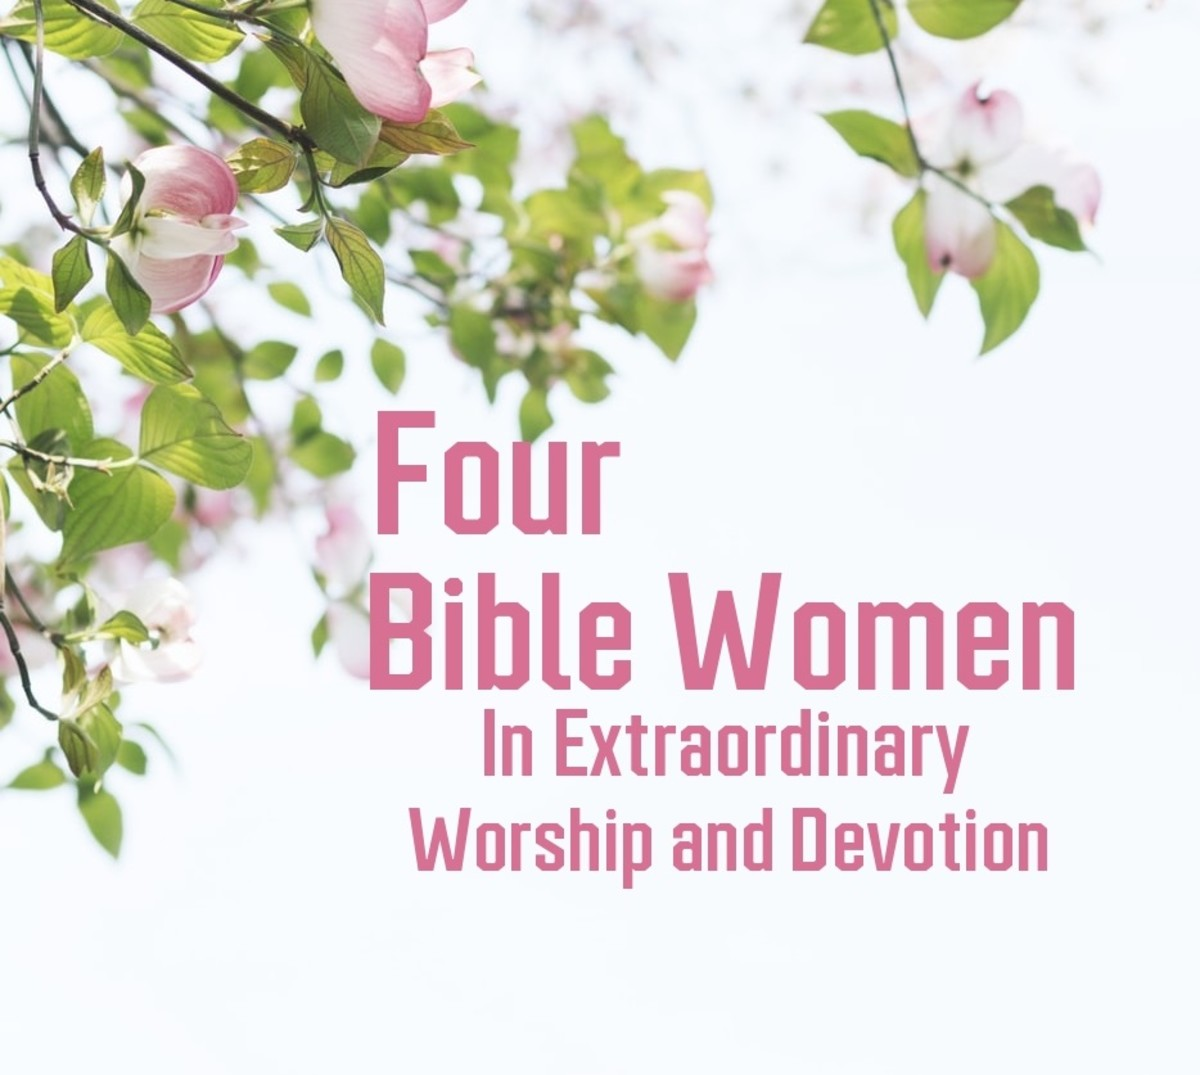 Four Bible Women in Extraordinary Worship and Devotion